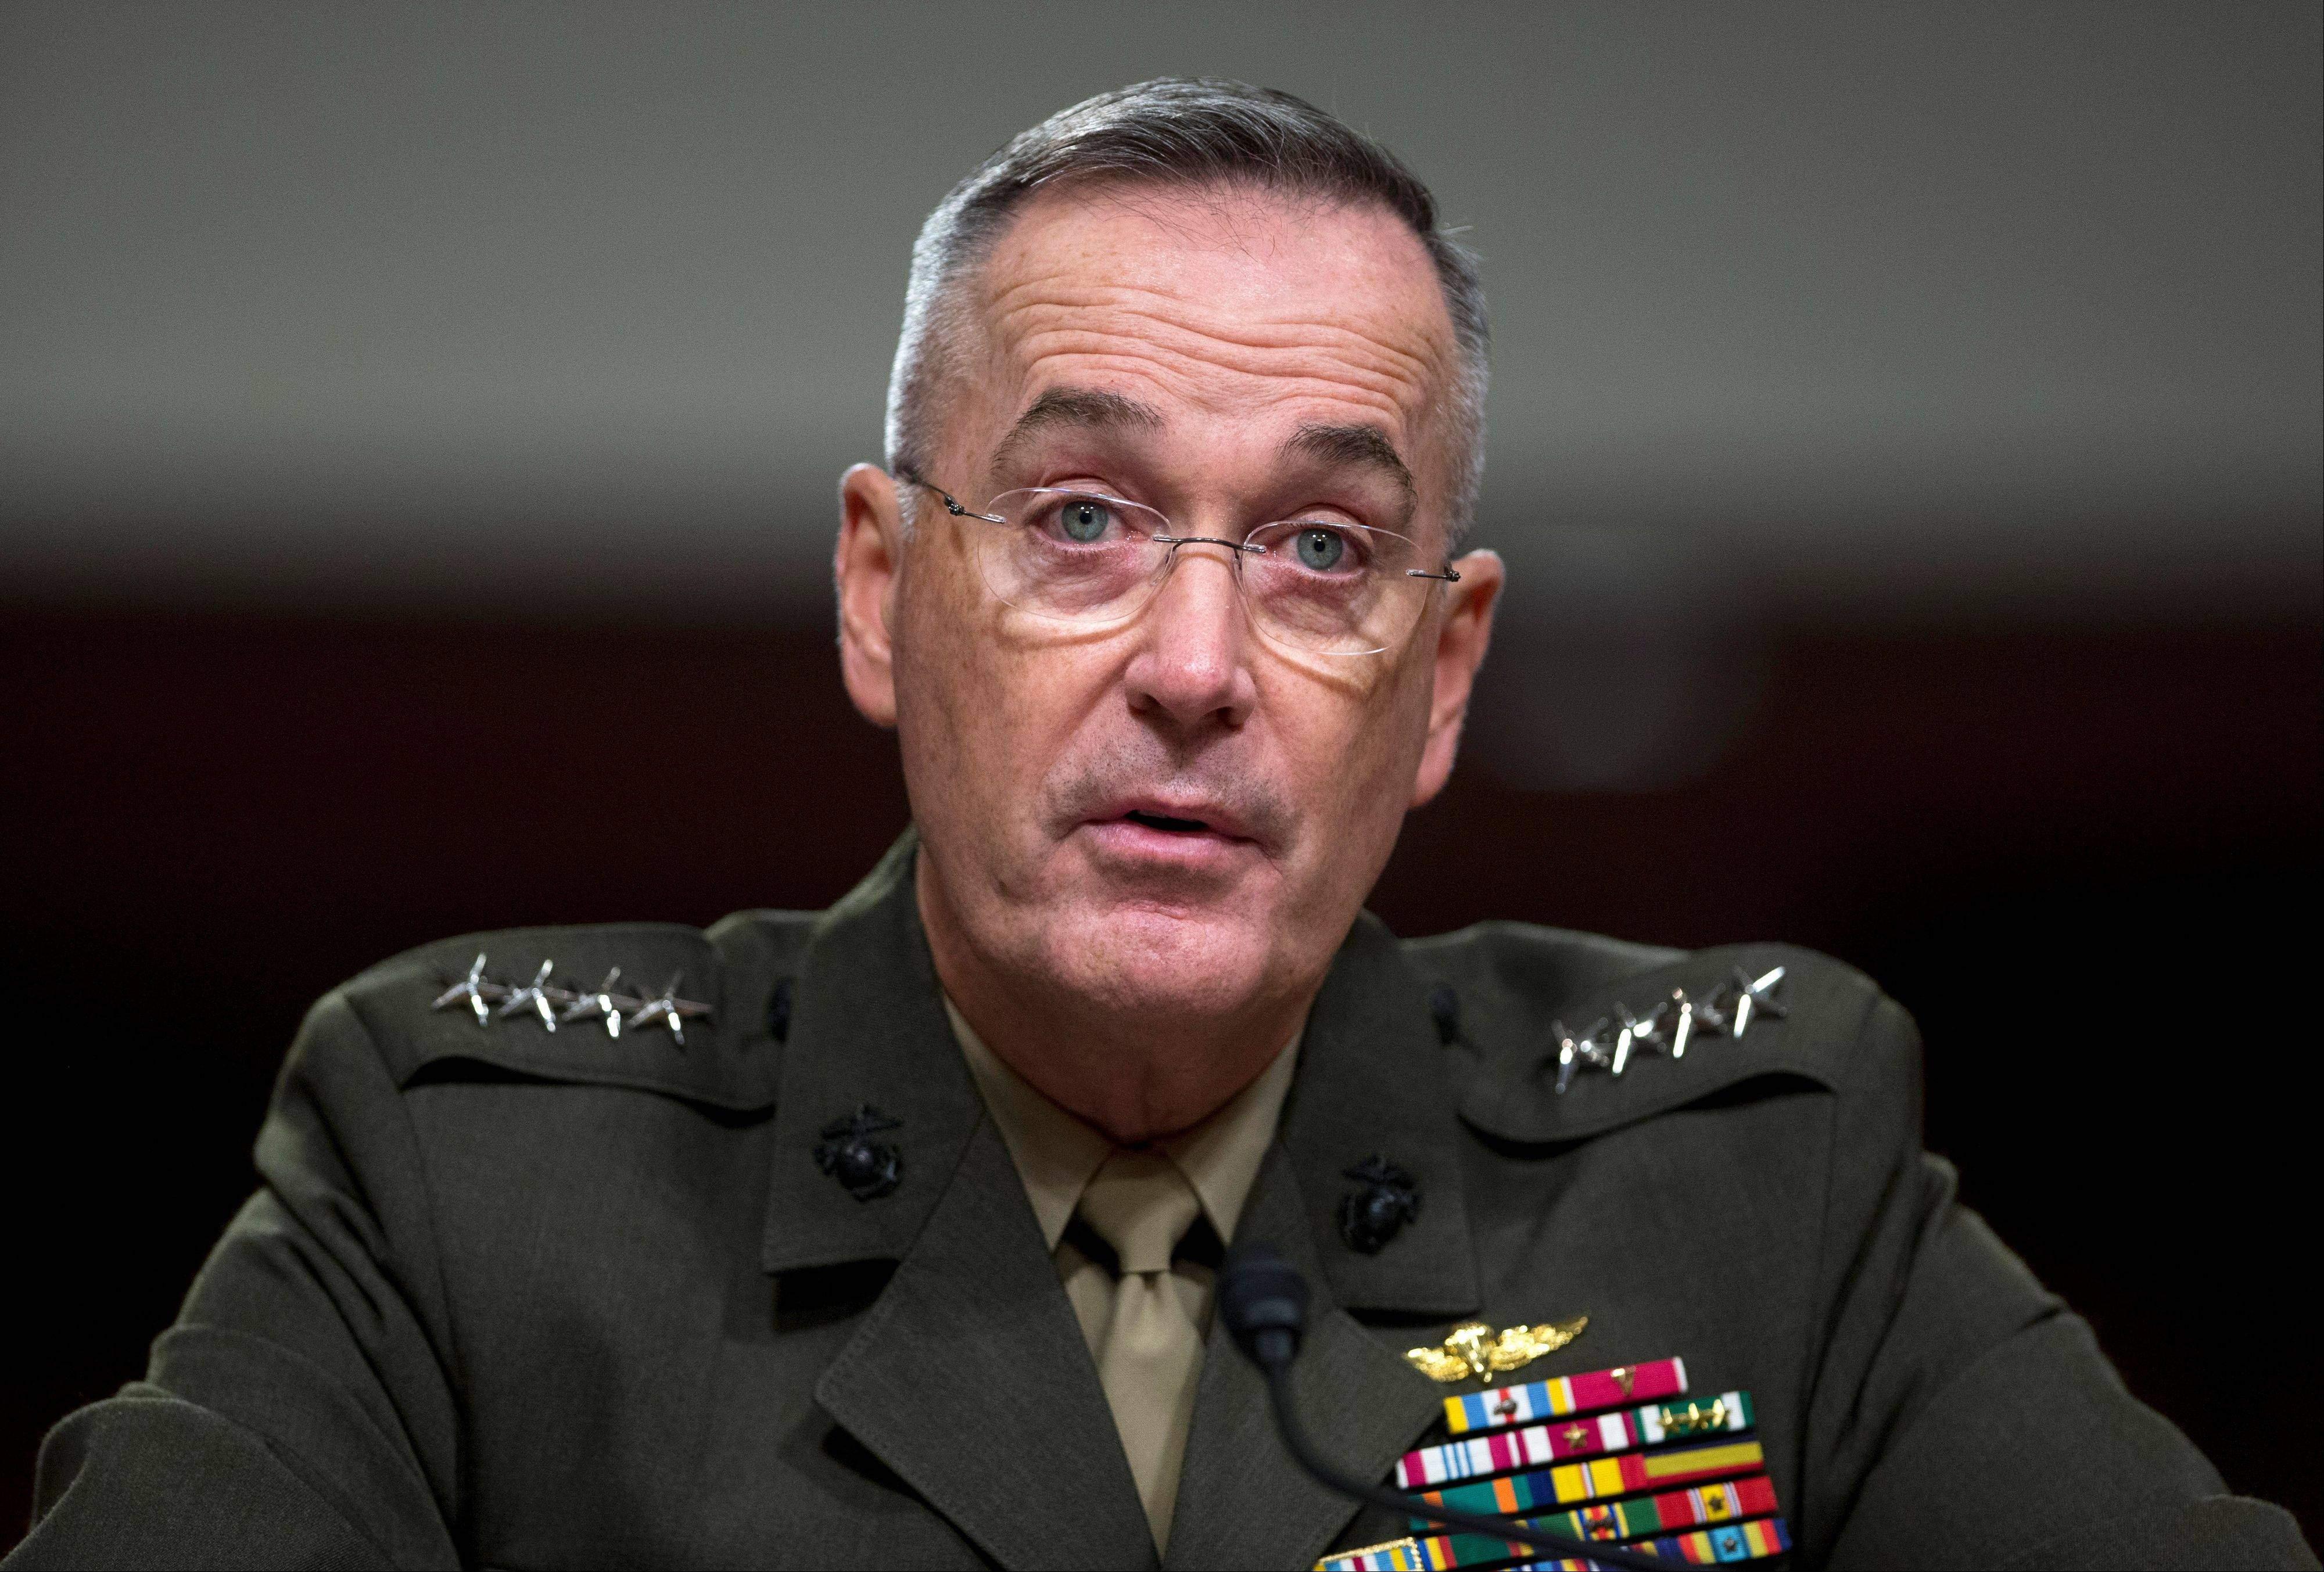 Marine Gen. Joseph Dunford, Jr. testifies on Capitol Hill in Washington Thursday before the Senate Armed Services Committee hearing on his confirmation to be the commander of the International Security Assistance Force and to be commander of the U.S. Forces, Afghanistan. Dunford would replace Gen. John Allen, who is the subject of a Pentagon investigation for potentially inappropriate communications.